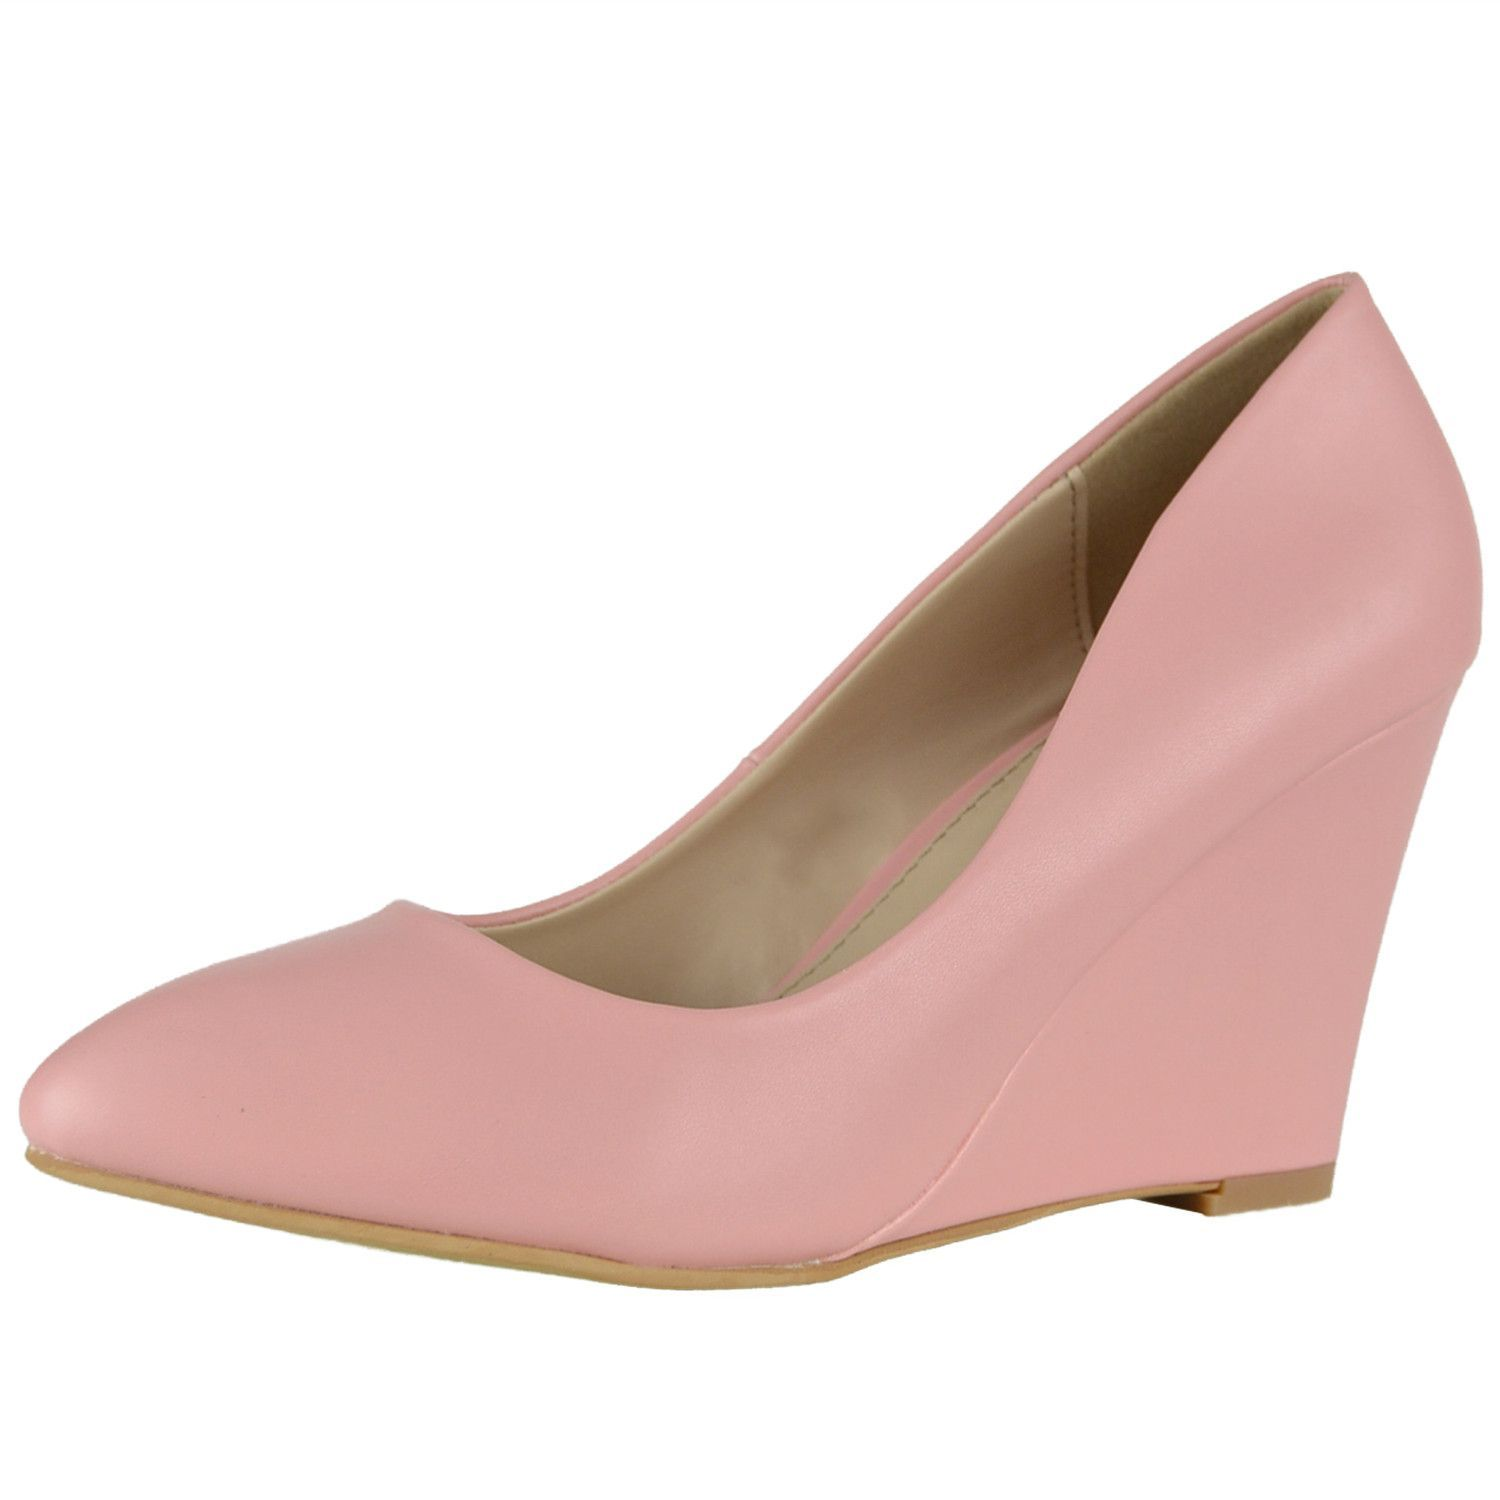 Womens Dress Shoes Almond Toe High Heel Casual Wedges PINK